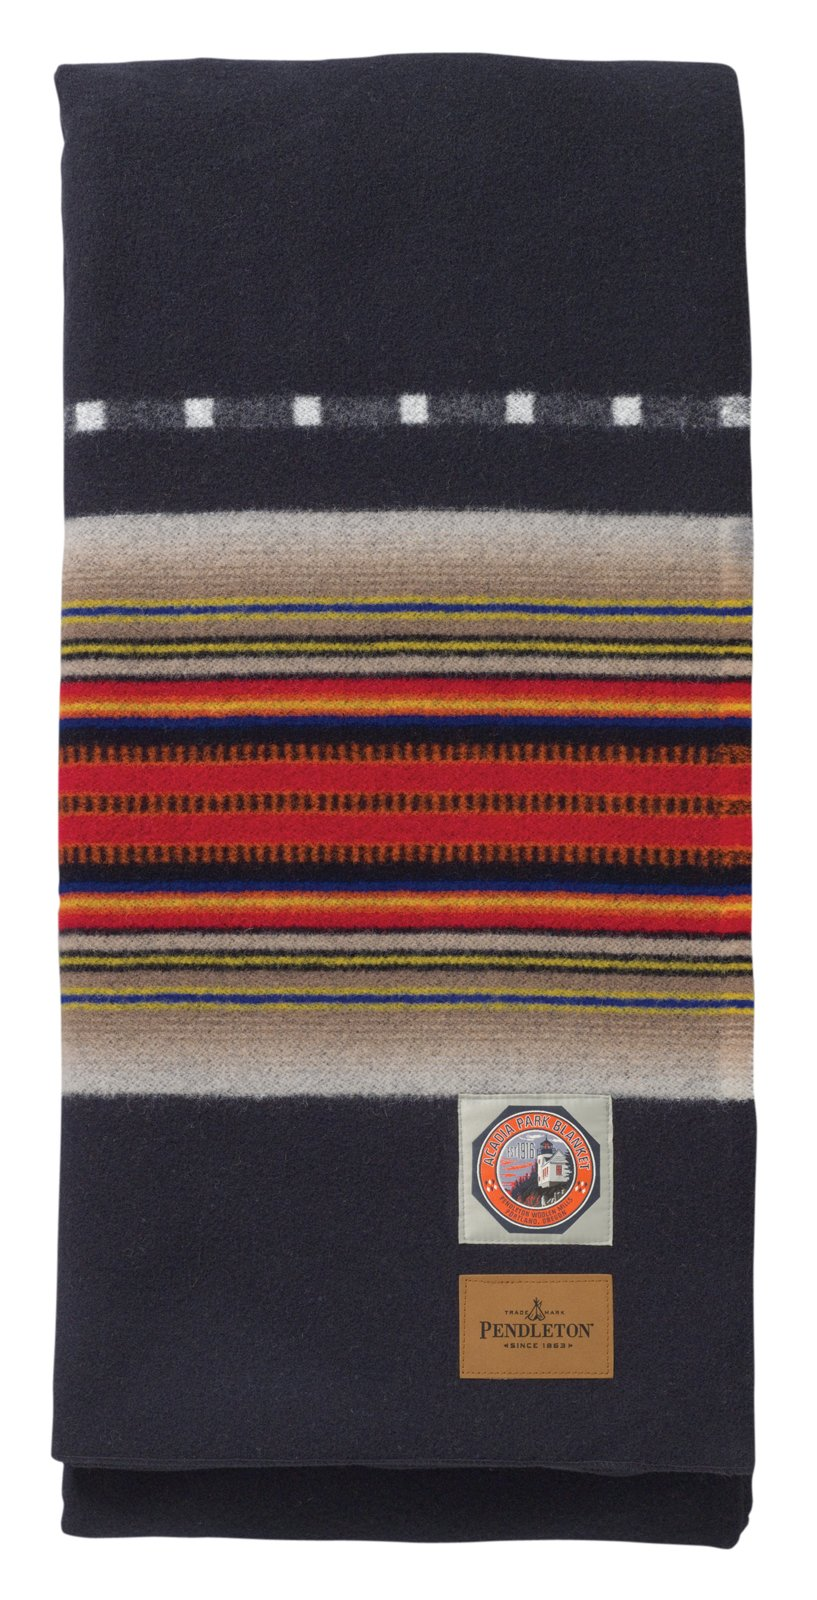 This blanket for Acadia National Park in Maine somehow seems the least modern to me. Though perhaps as an accent to some really clean, spartan interior it could work well.  Pendleton's Park Blankets by Aaron Britt